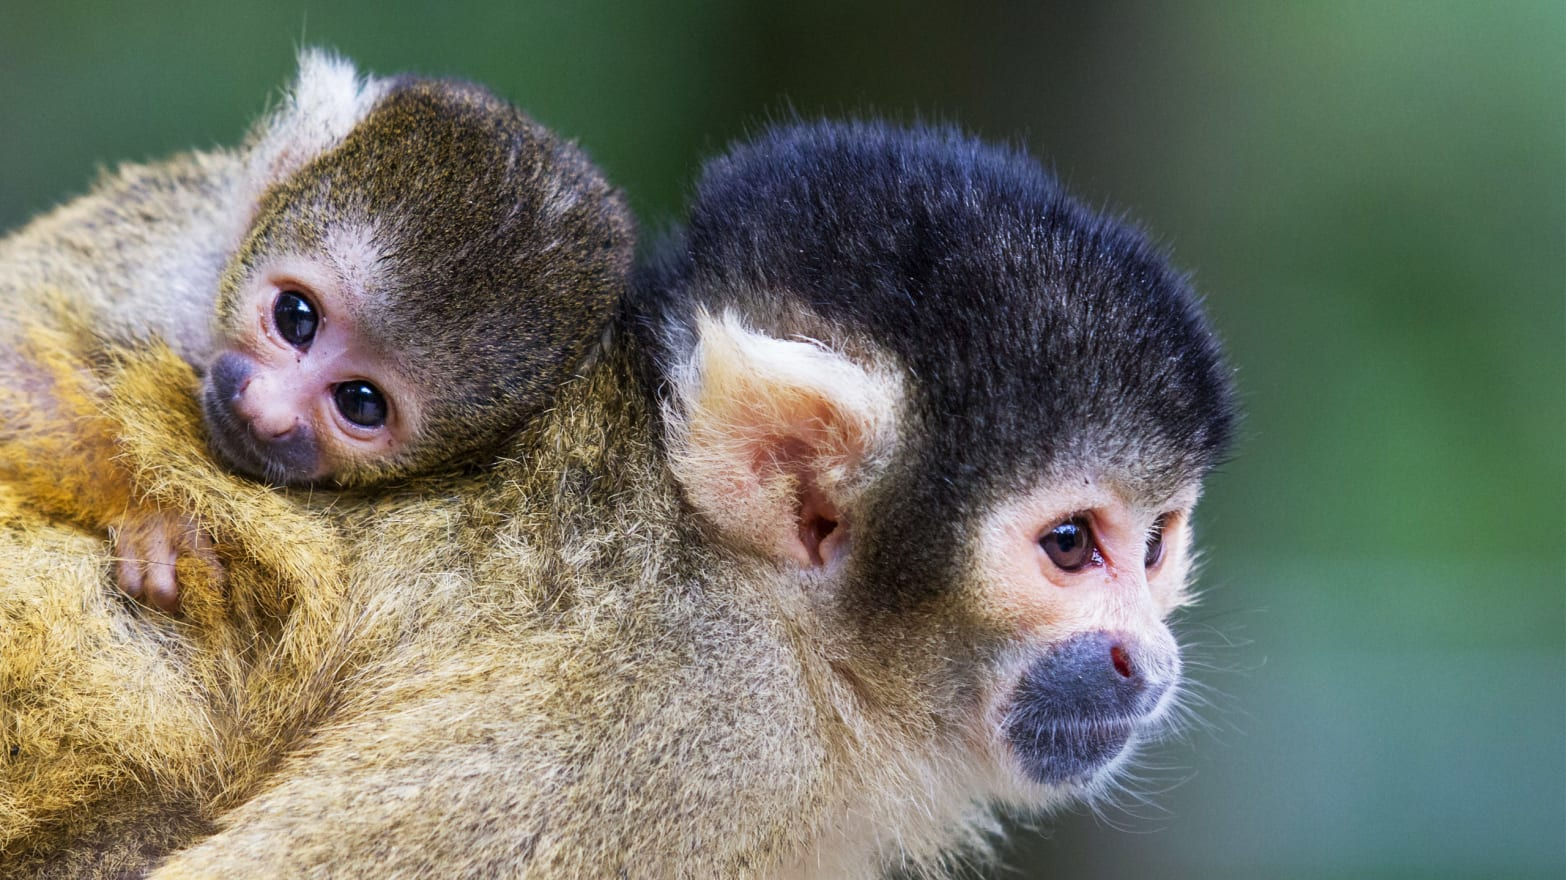 Pharma Business Starved Baby Monkeys to Death, Feds Claim